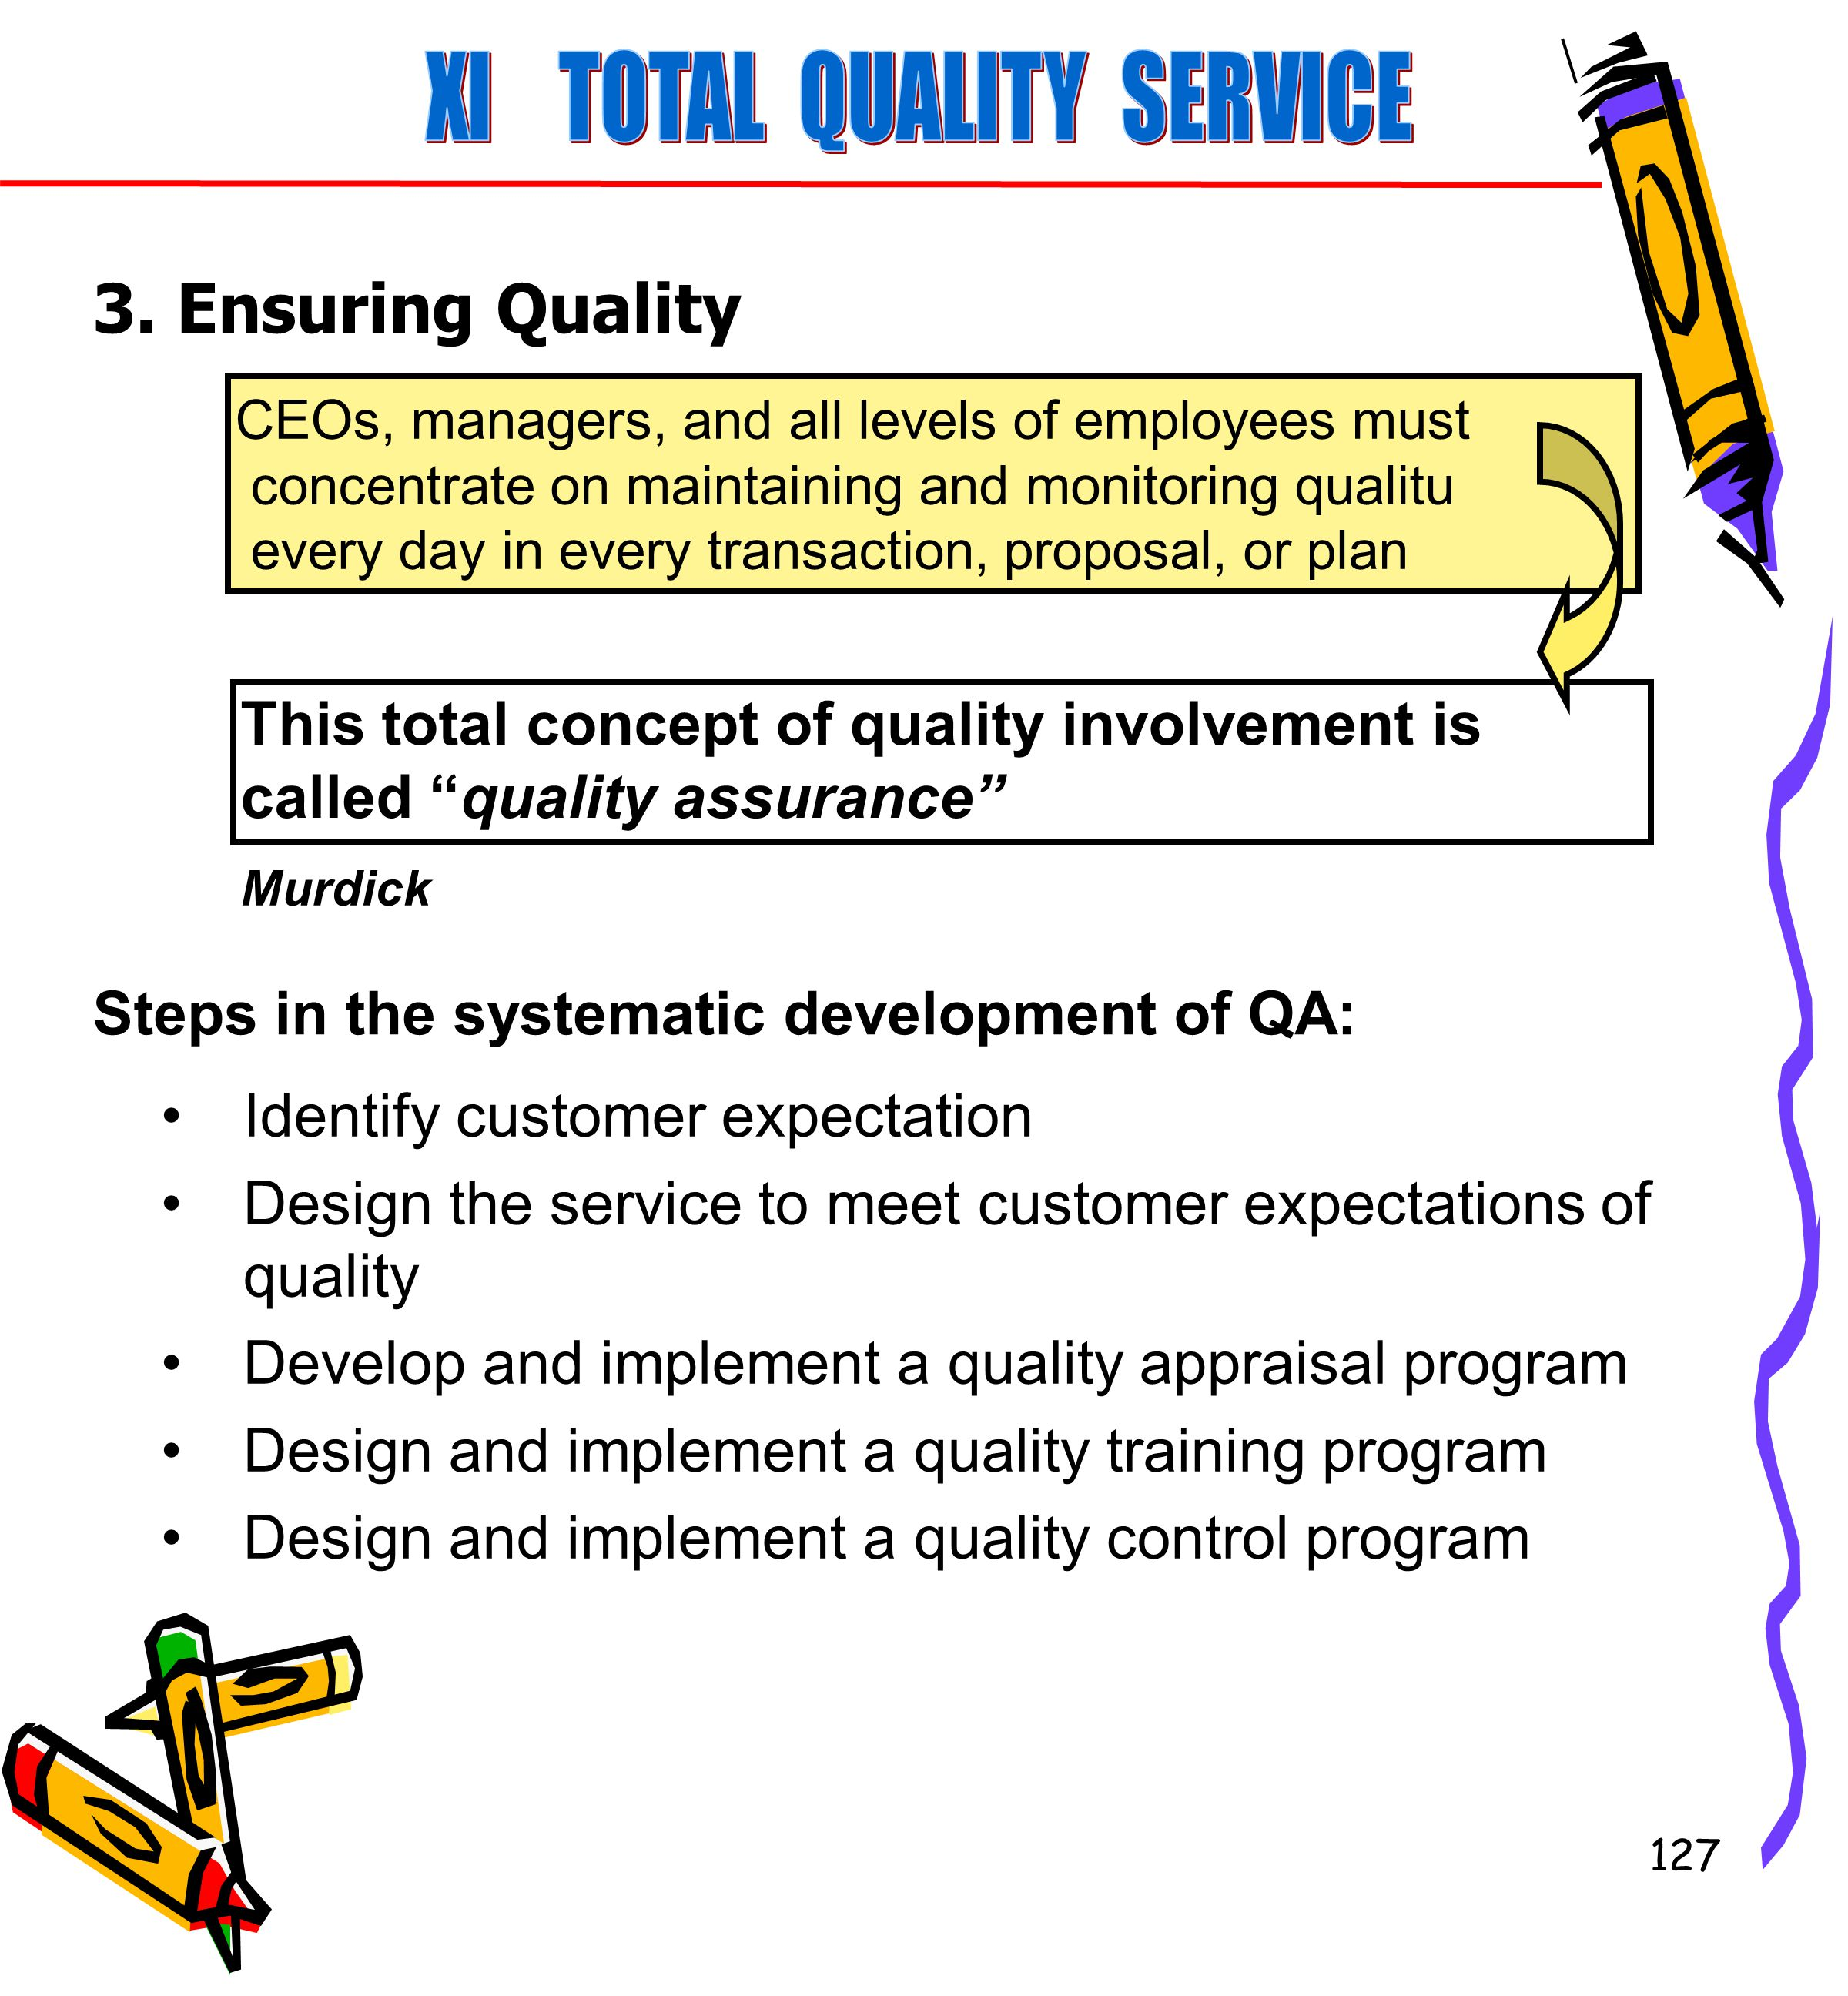 127 Identify customer expectation Design the service to meet customer expectations of quality Develop and implement a quality appraisal program Design